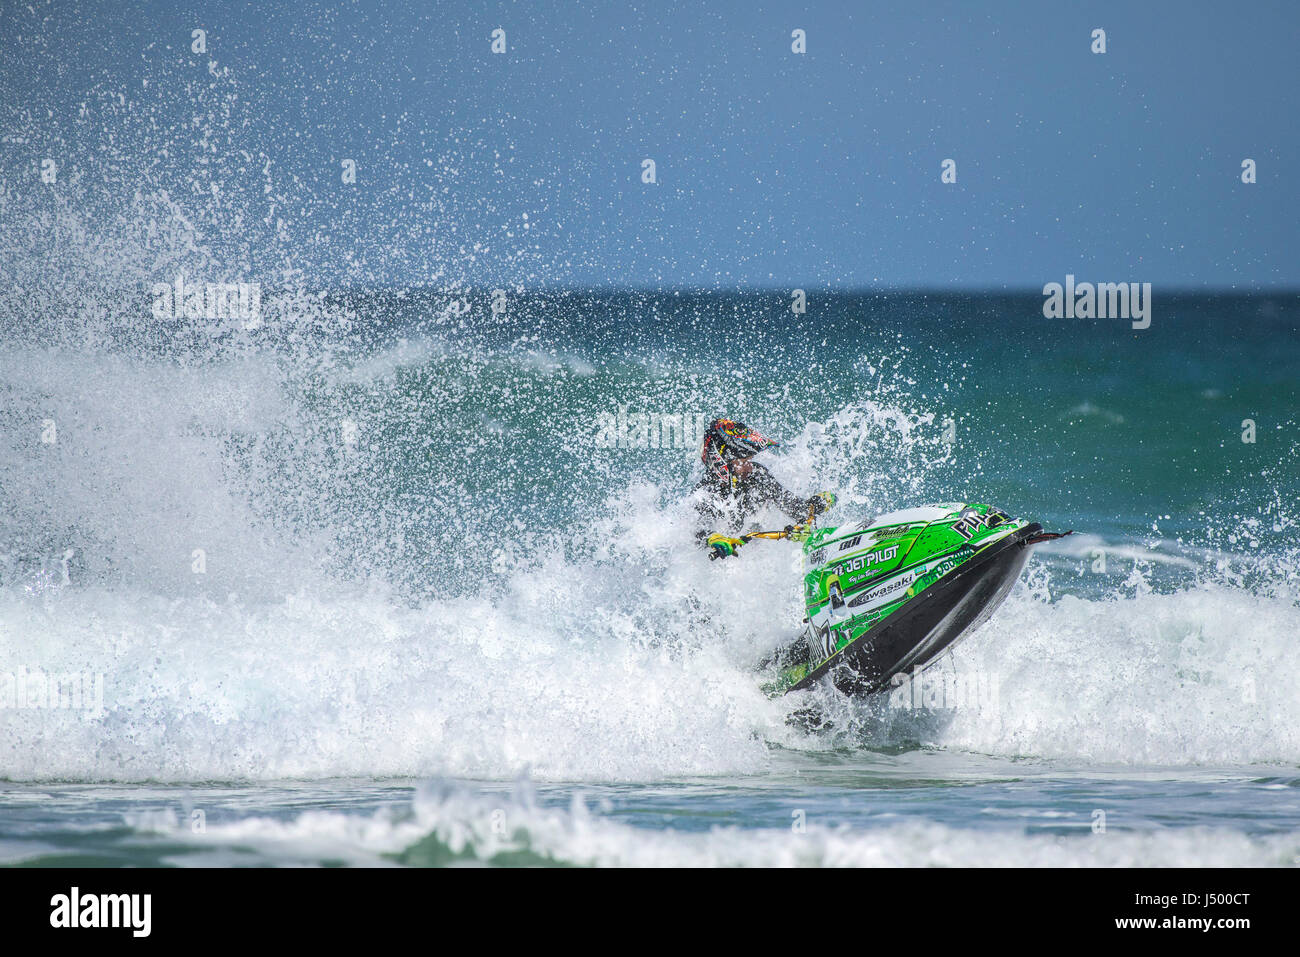 A jetski rider at the IFWA Championships Jetski Jet ski Spectacular action  IFWA Championships Battle of the pilots Stock Photo